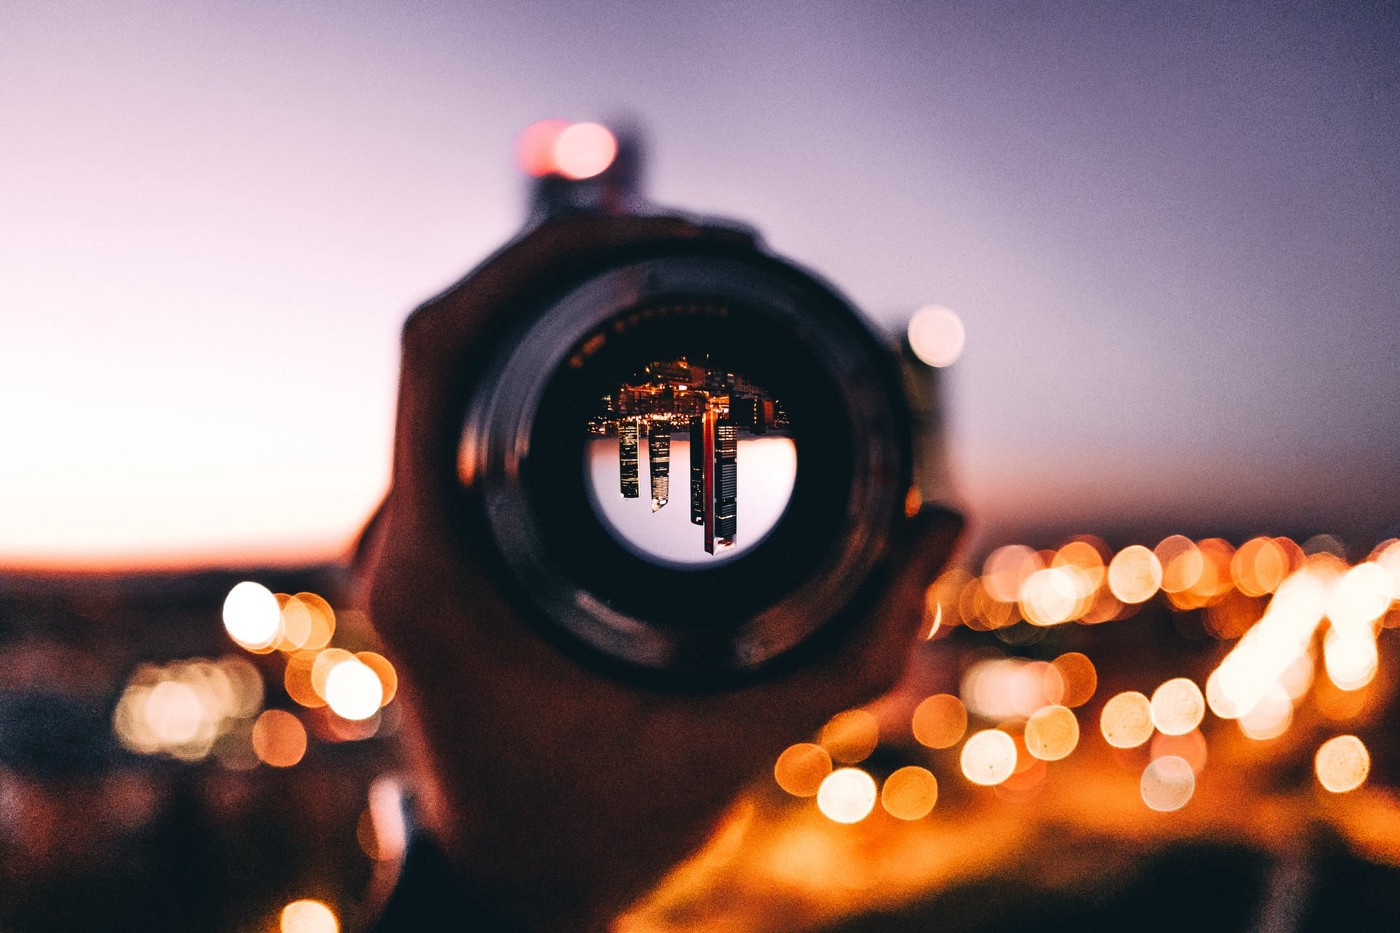 Upside down city view by camera lenses